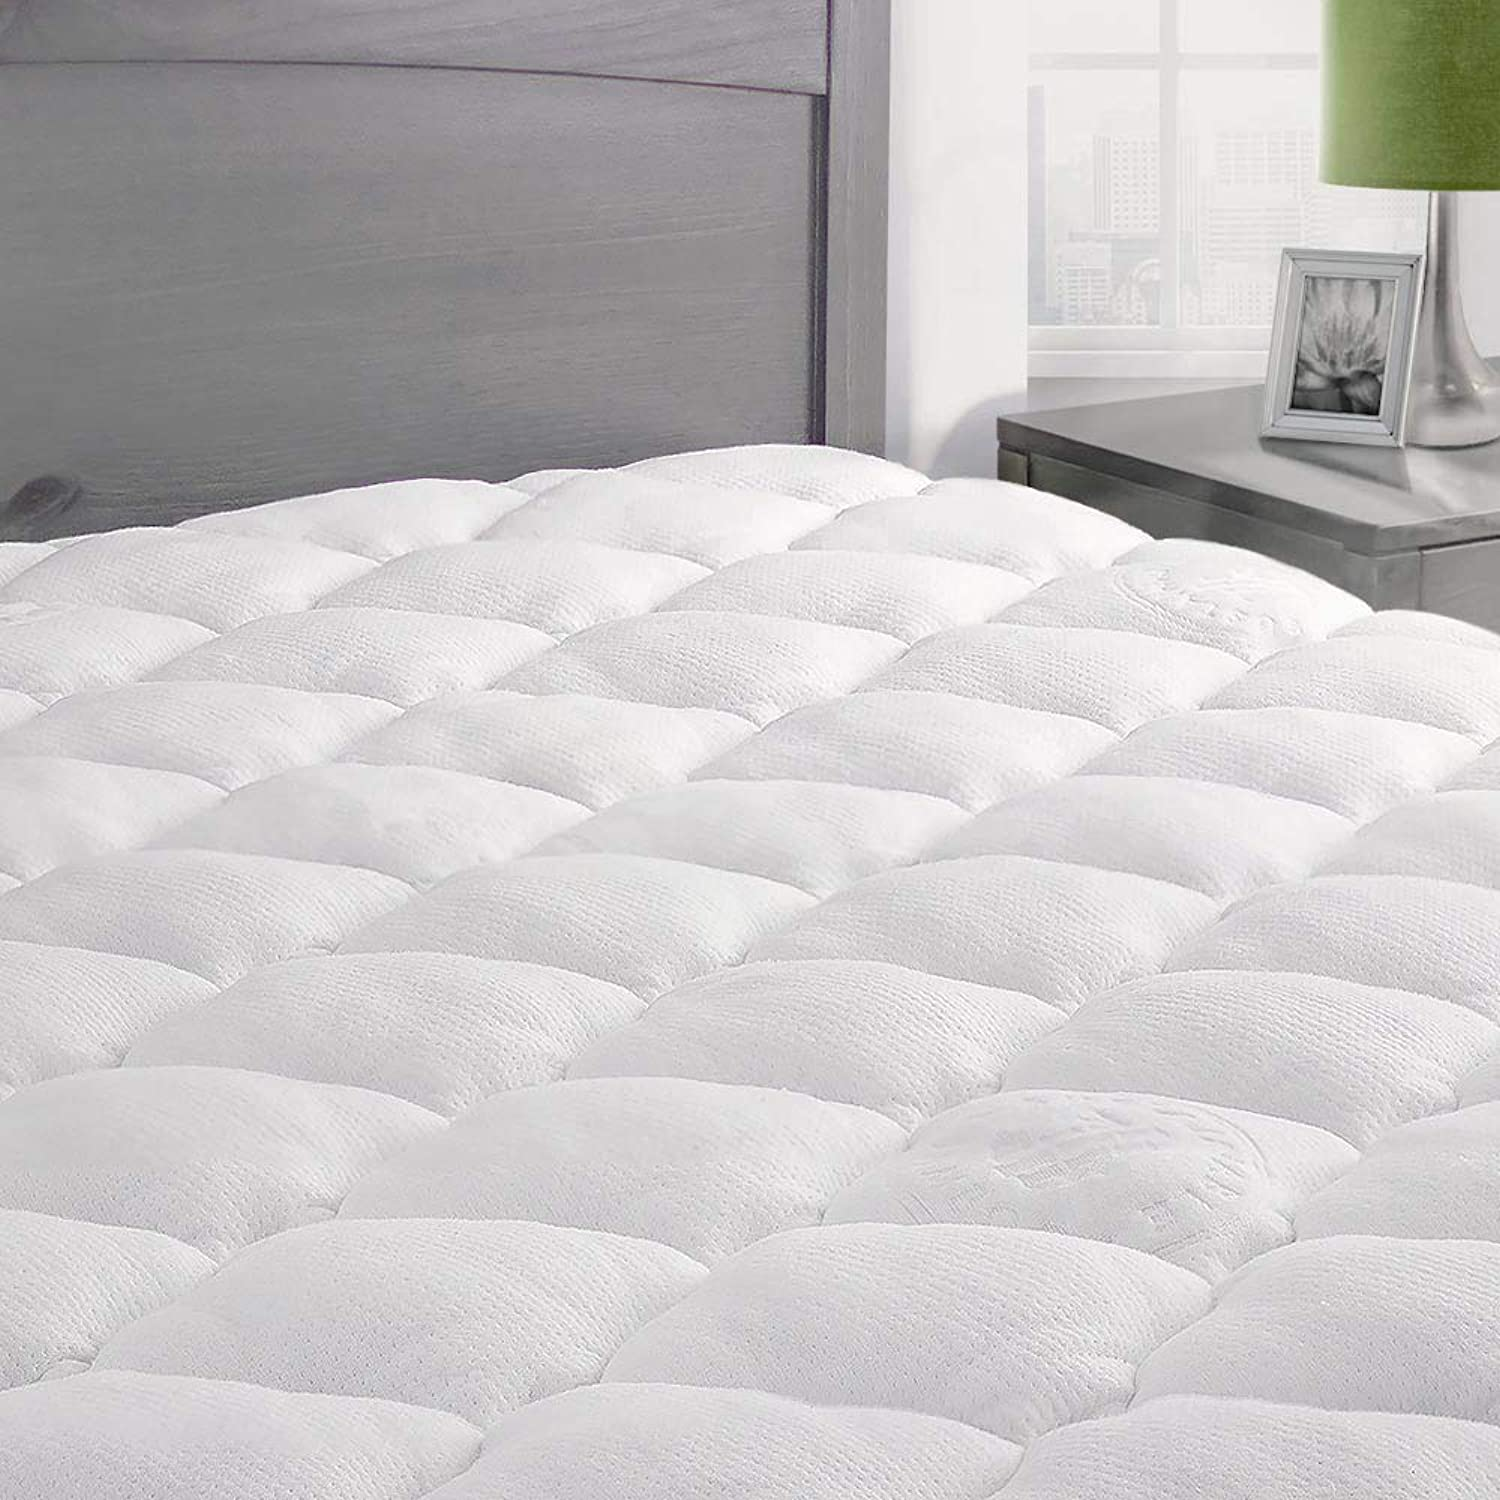 ExceptionalSheets Bamboo Mattress Pad with Fitted Skirt - Extra Plush Cooling Topper - Hypoallergenic - Made in The USA, Twin